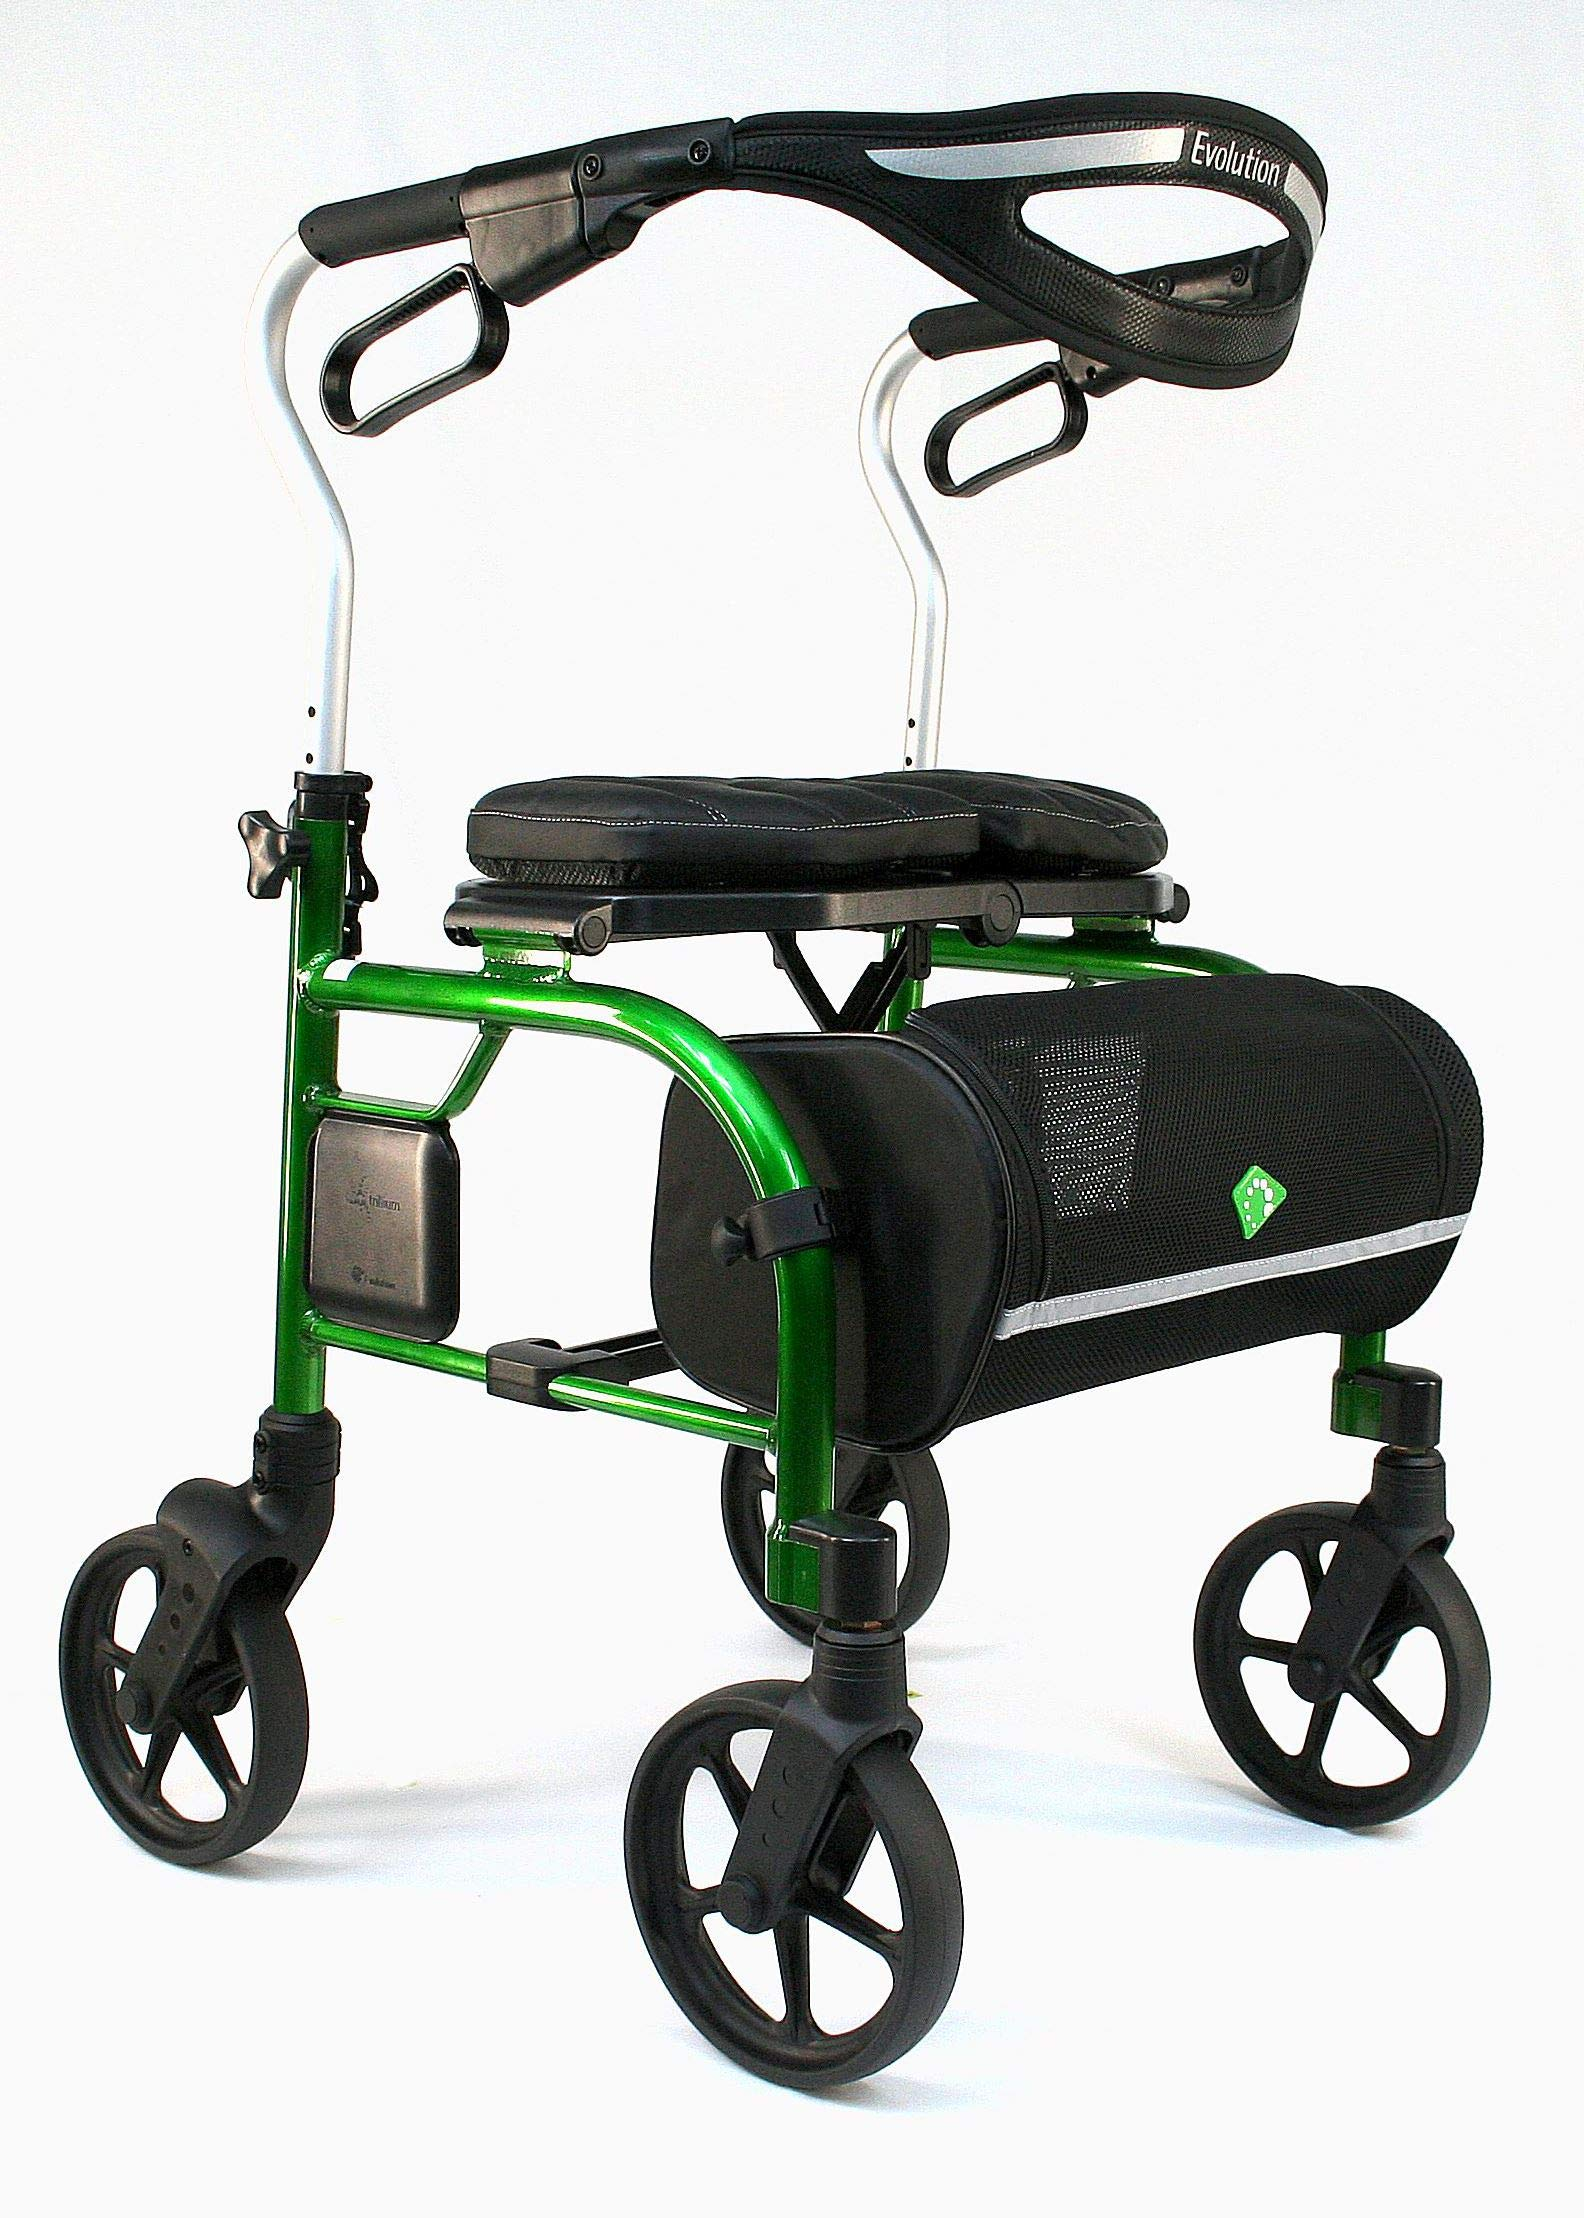 Evolution Trillium Lightweight Medical Walker Rollator with Seat, Large Wheels, Brakes, Backrest, Basket for Seniors Indoor Outdoor use (Vidid Green, Tall)